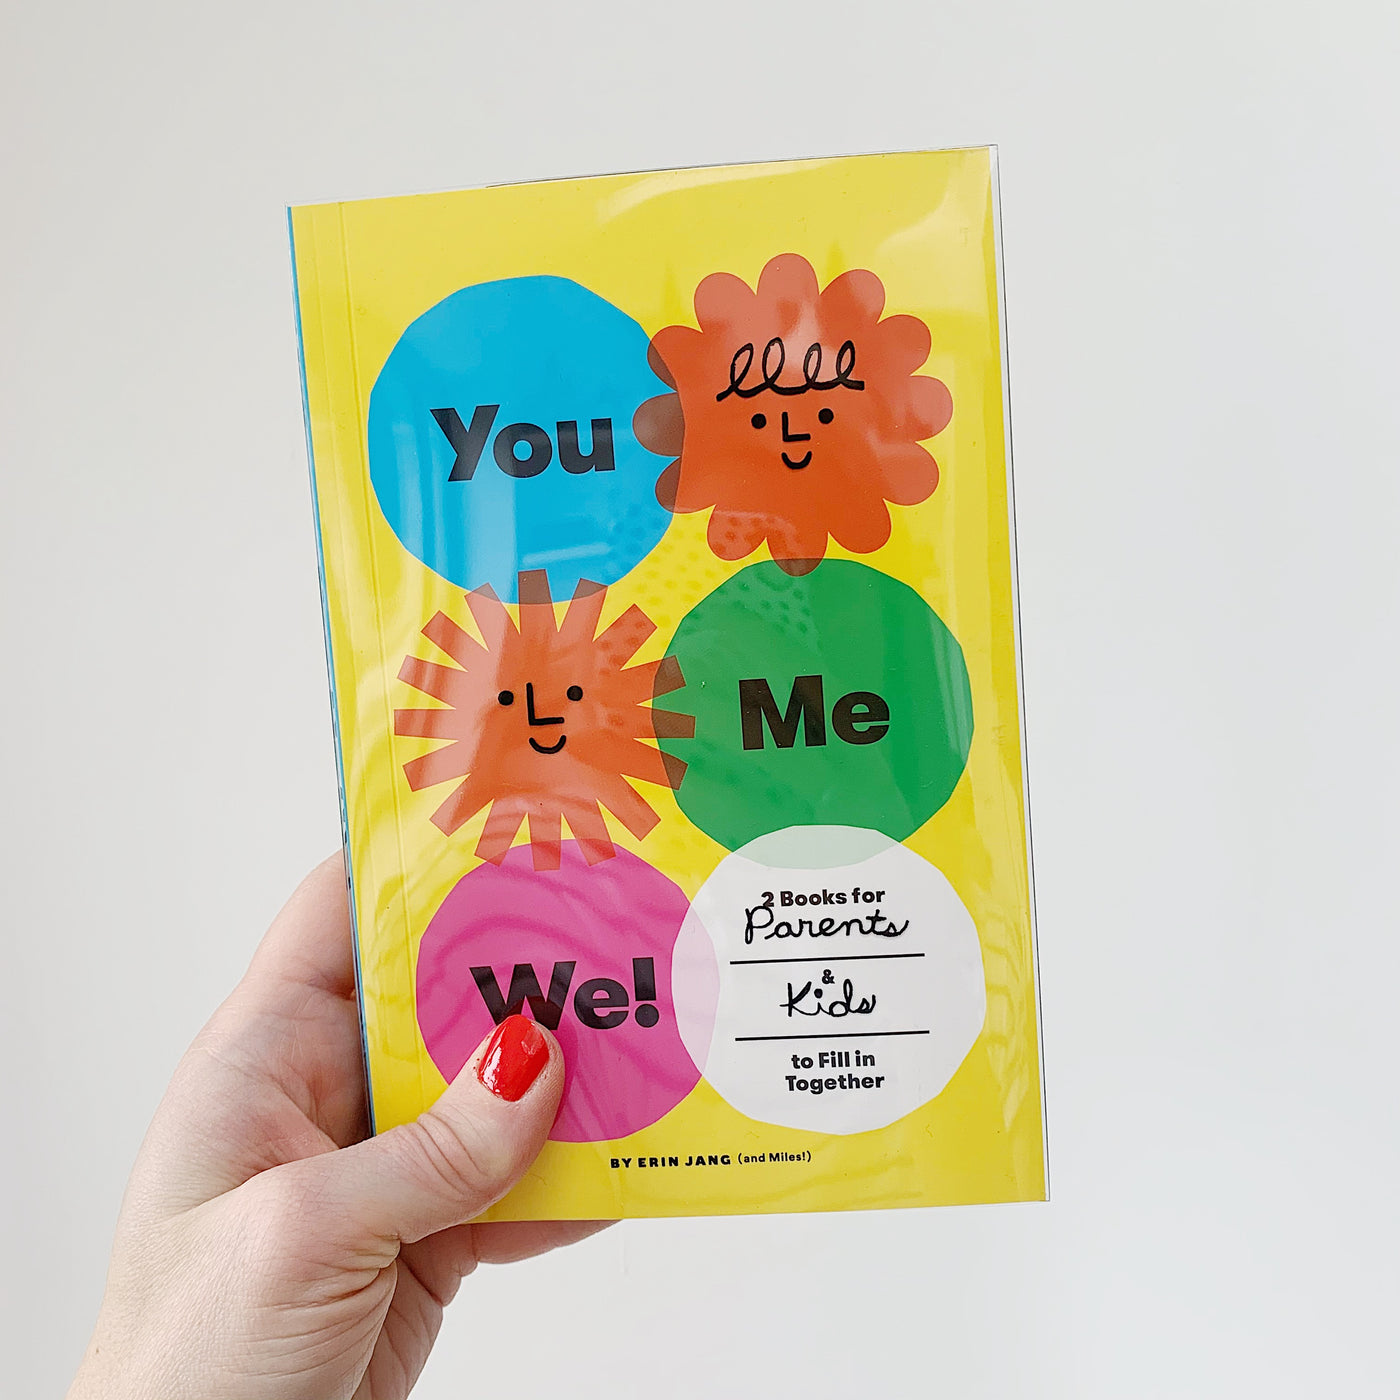 YOU, ME, WE: 2 BOOKS FOR PARENTS + KIDS TO FILL IN TOGETHER